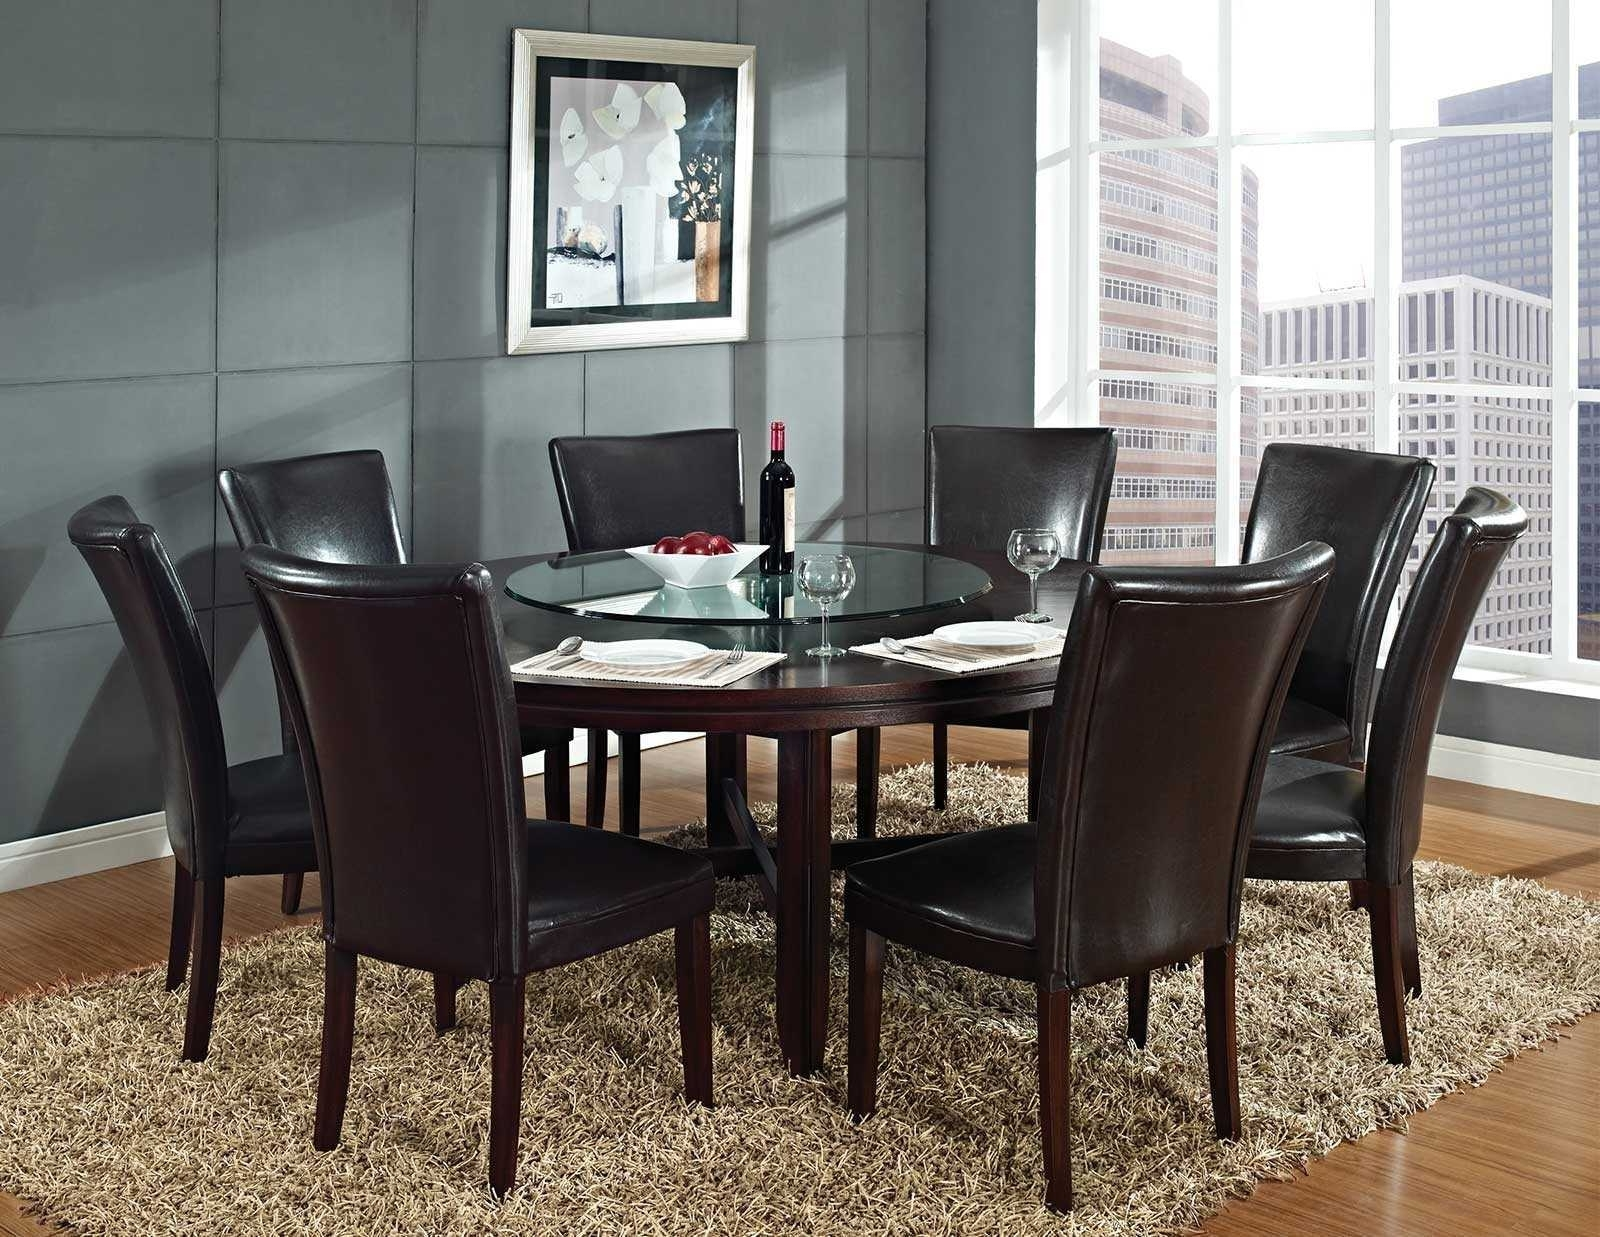 Round Dining Table With 8 Chairs – Principlesofafreesociety Throughout Widely Used Dining Tables Set For  (View 21 of 25)